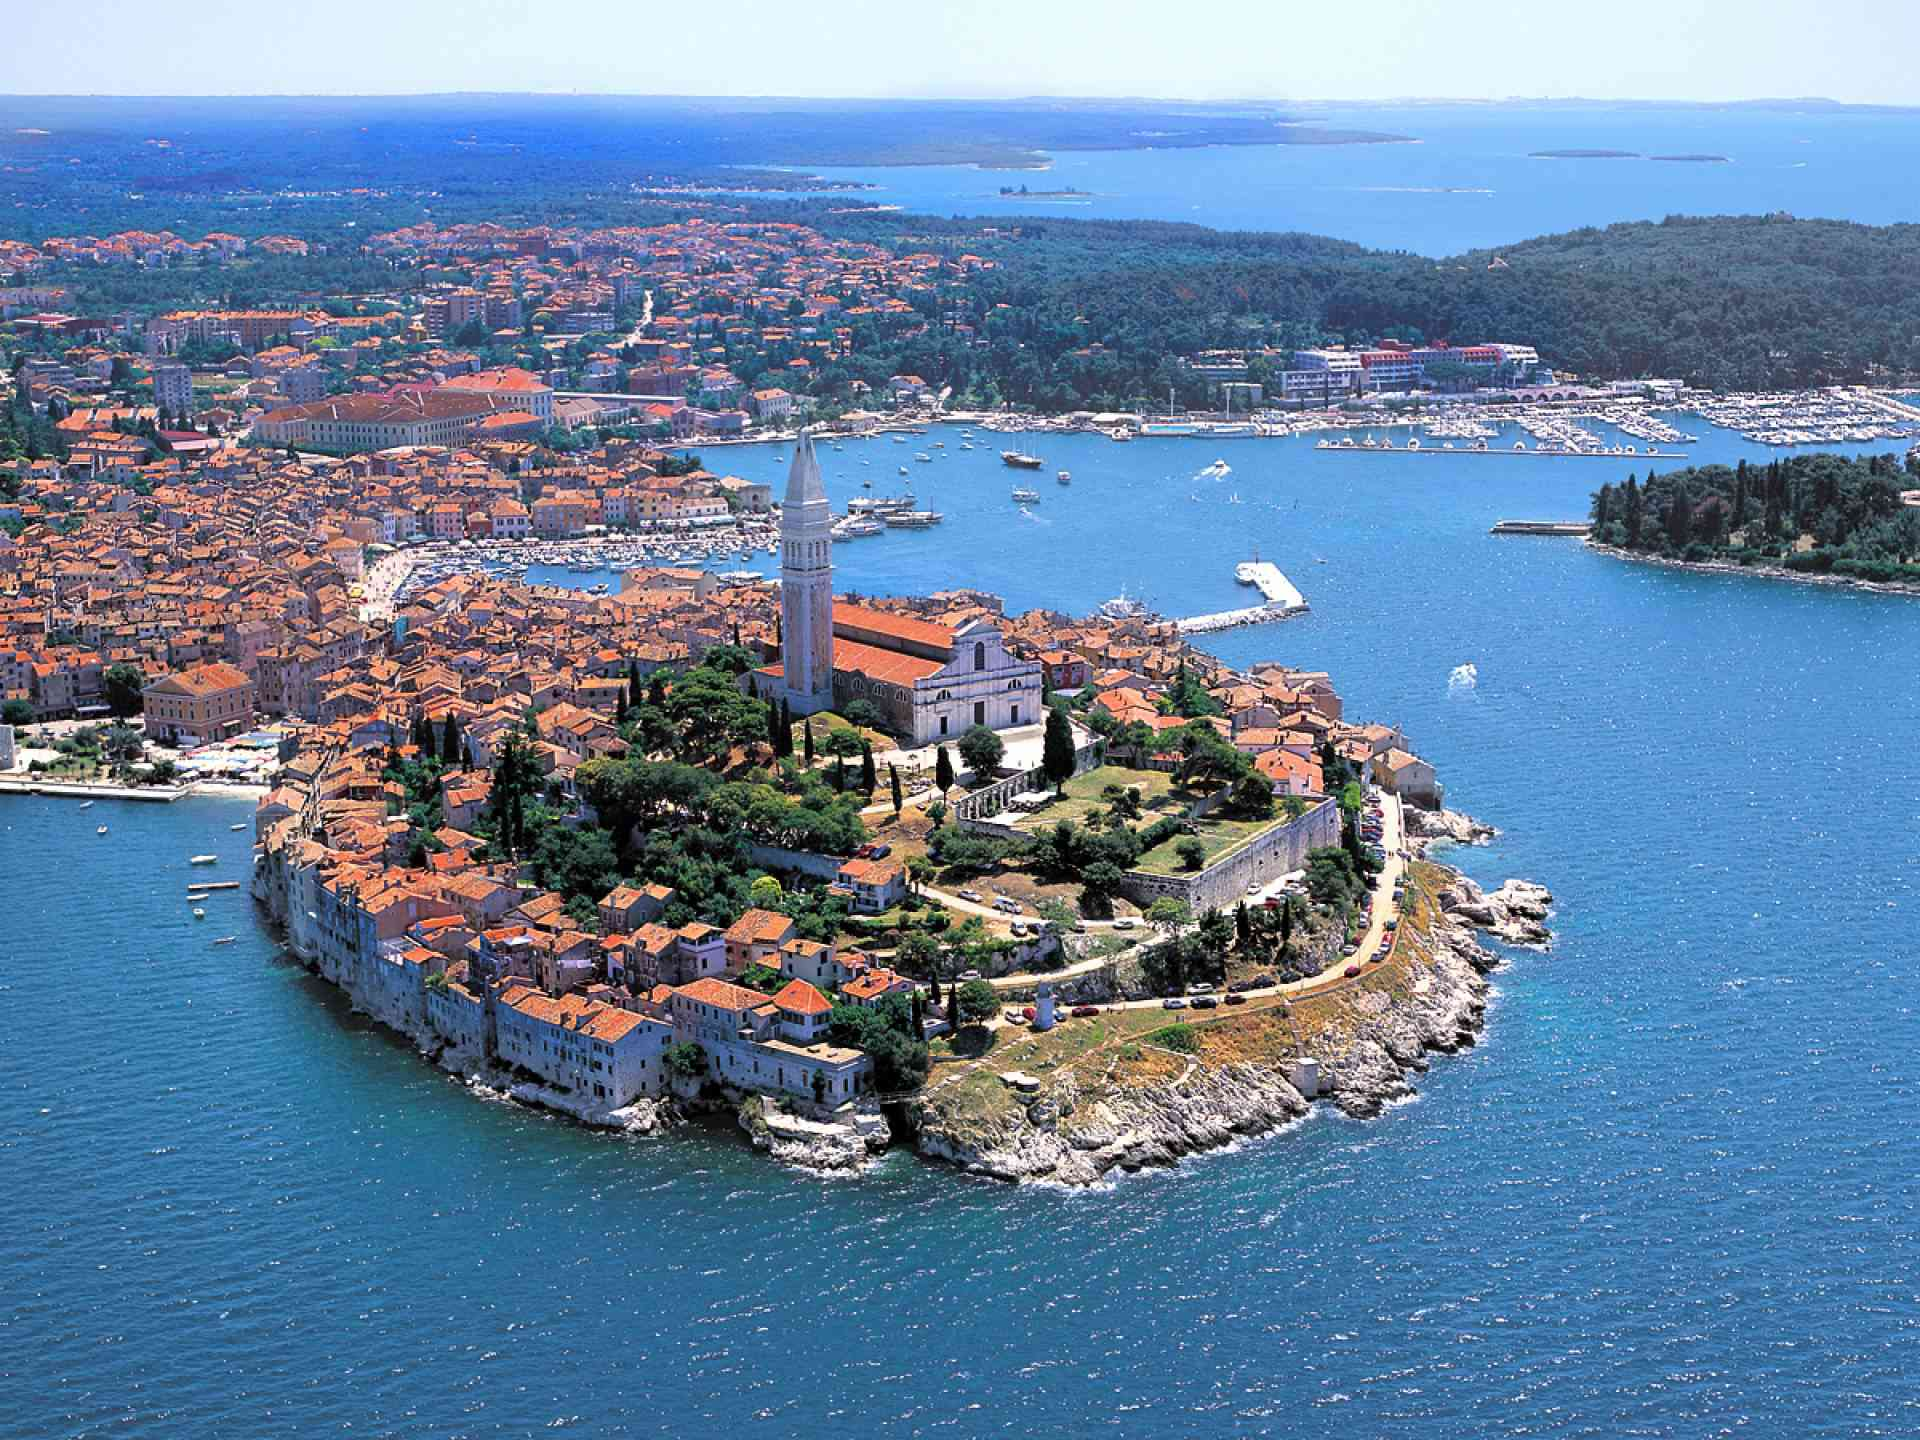 Rovinj, Croatia - Monterrasol small group tours to Rovinj, Croatia. Travel agency offers small group car tours to see Rovinj in Croatia. Order small group tour to Rovinj with departure date on request.